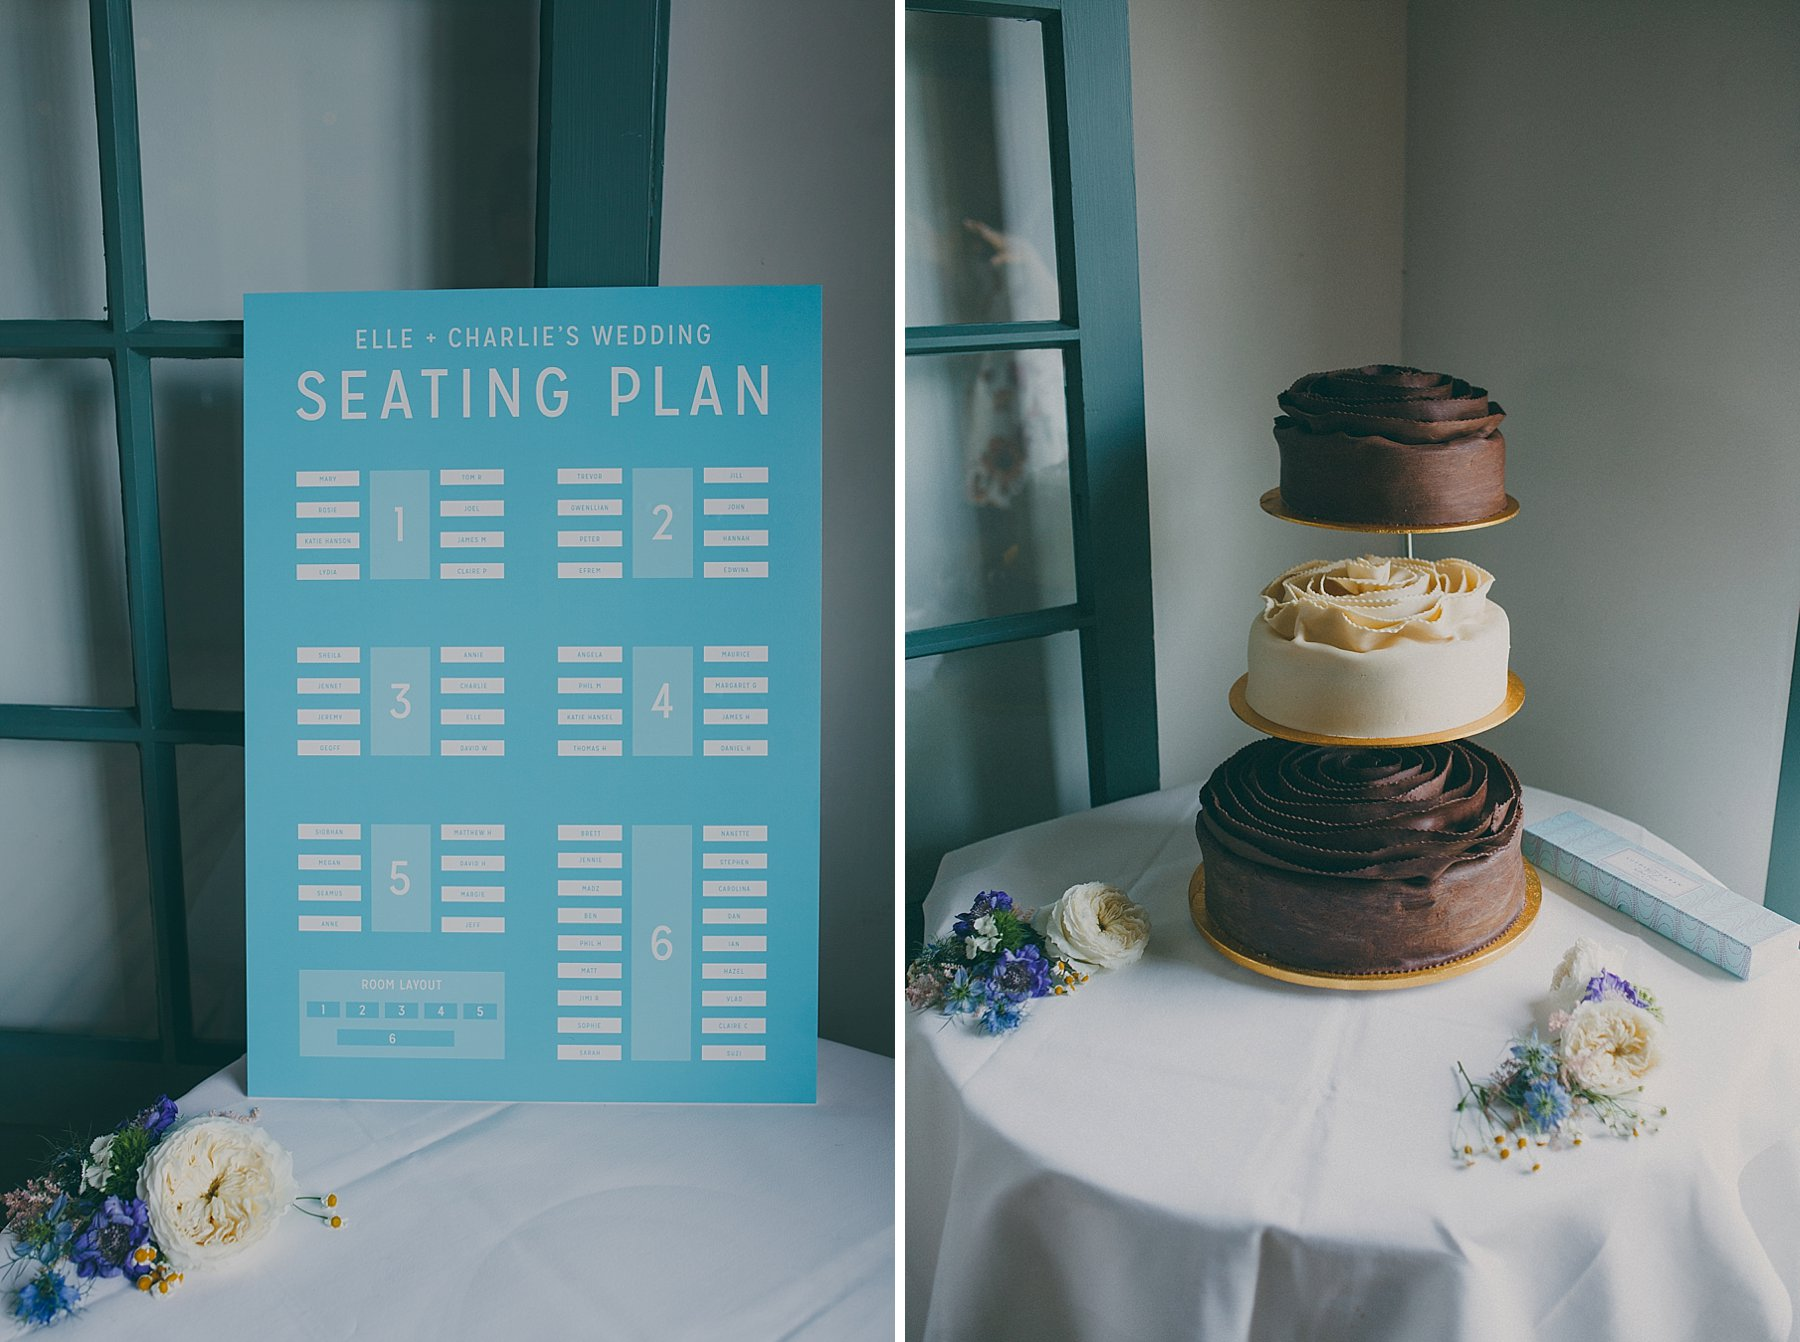 47 The wharf Teddington wedding table plan vanilla chocolate cake.jpg